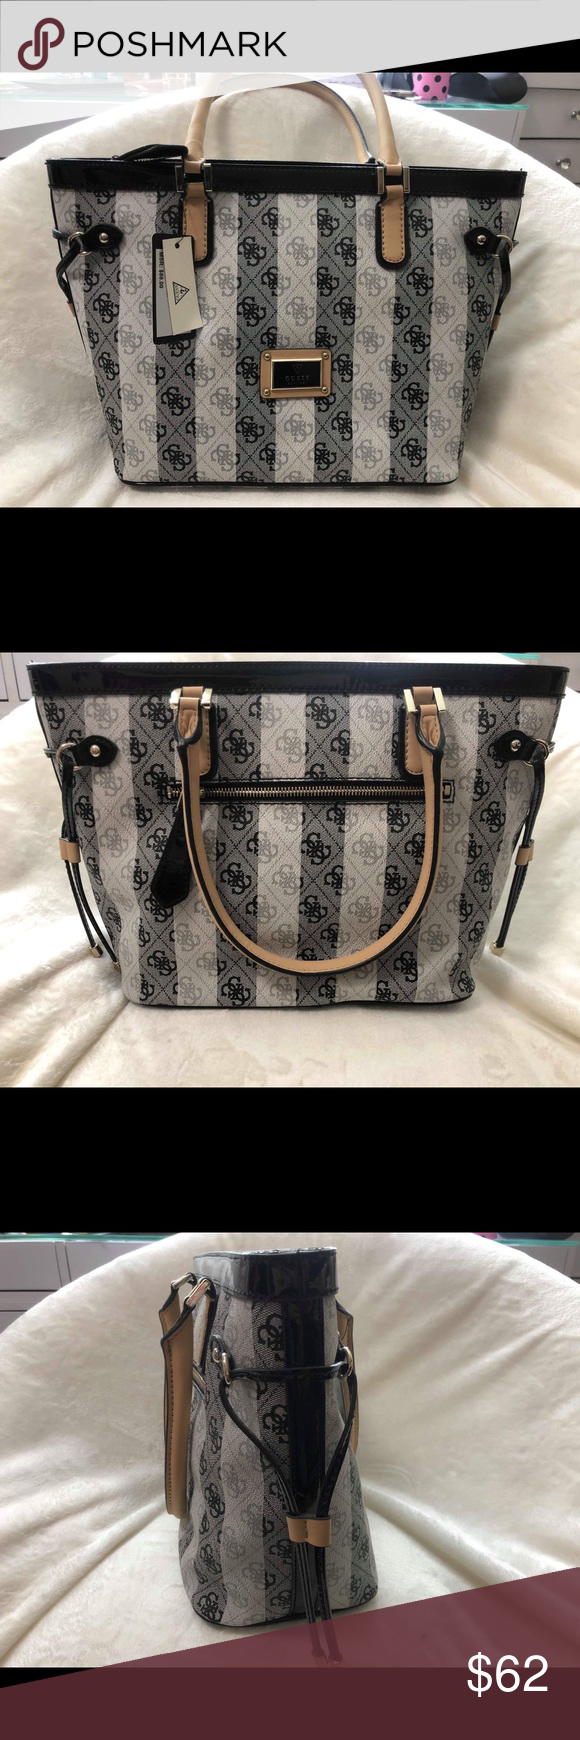 d4fe26a7ff NWT  Guess Satchel - B W Striped Handbag Purse NEVER WORN USED